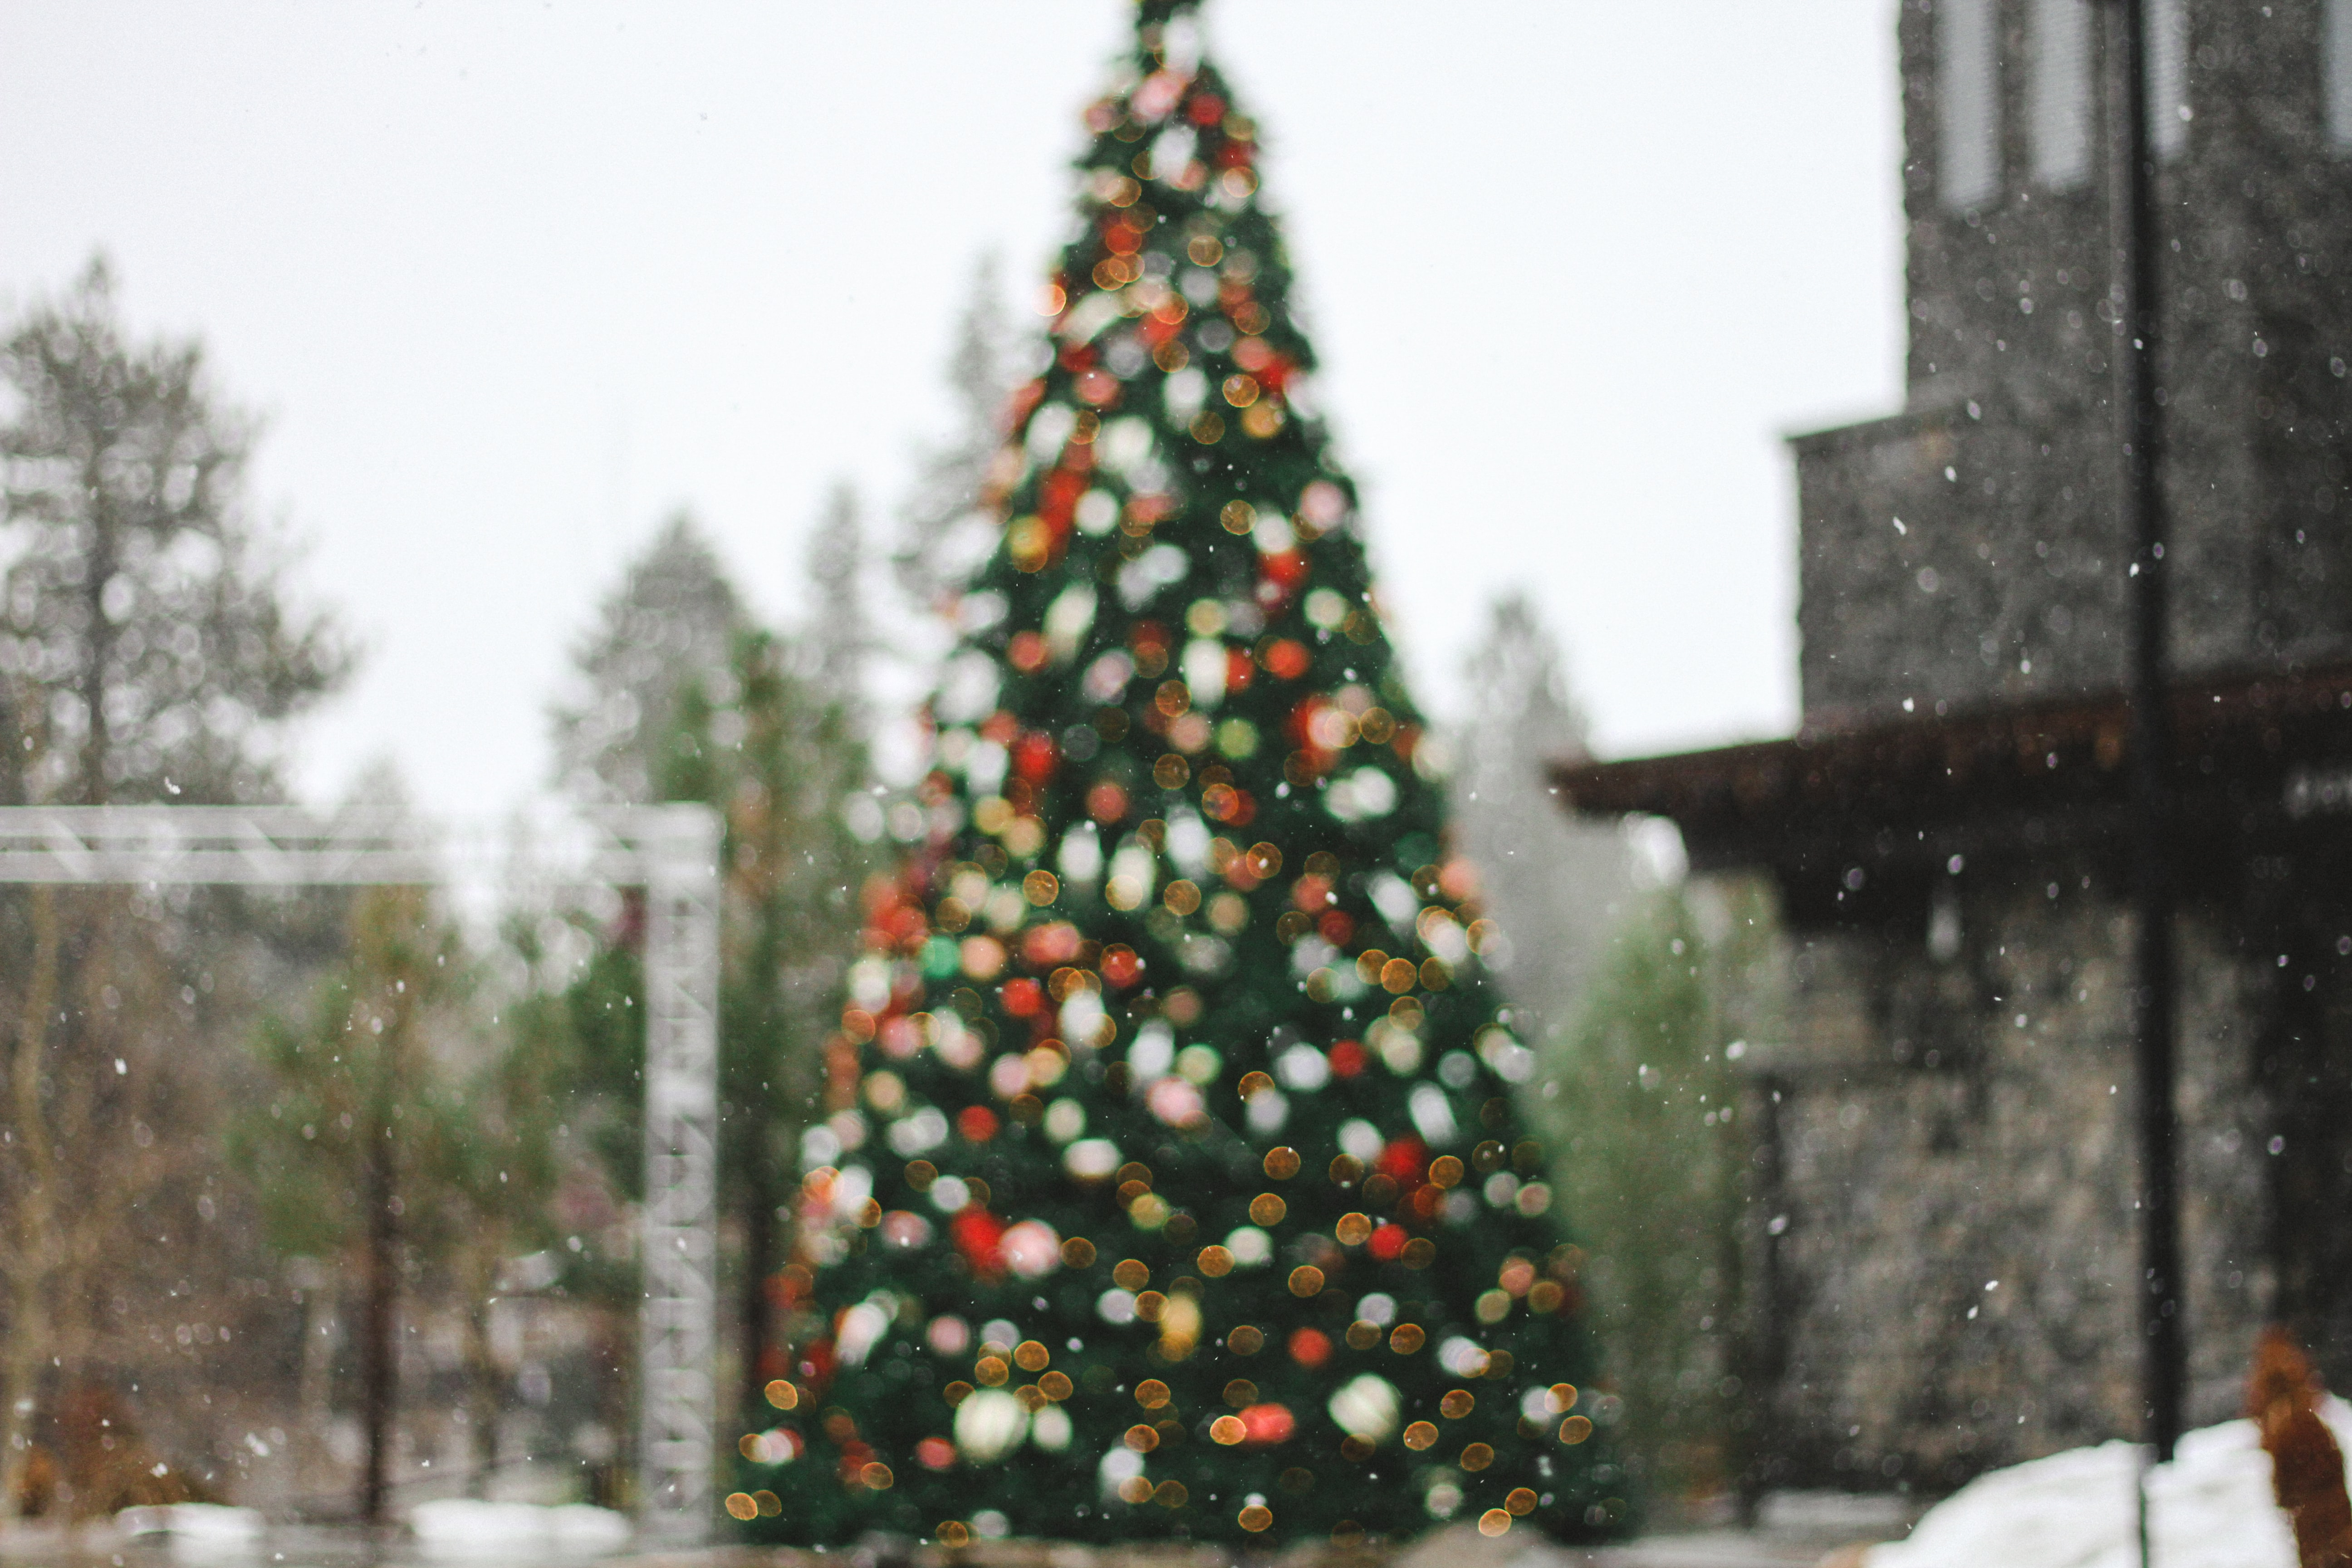 Snow falls in front of a festive, out of focus Christmas tree